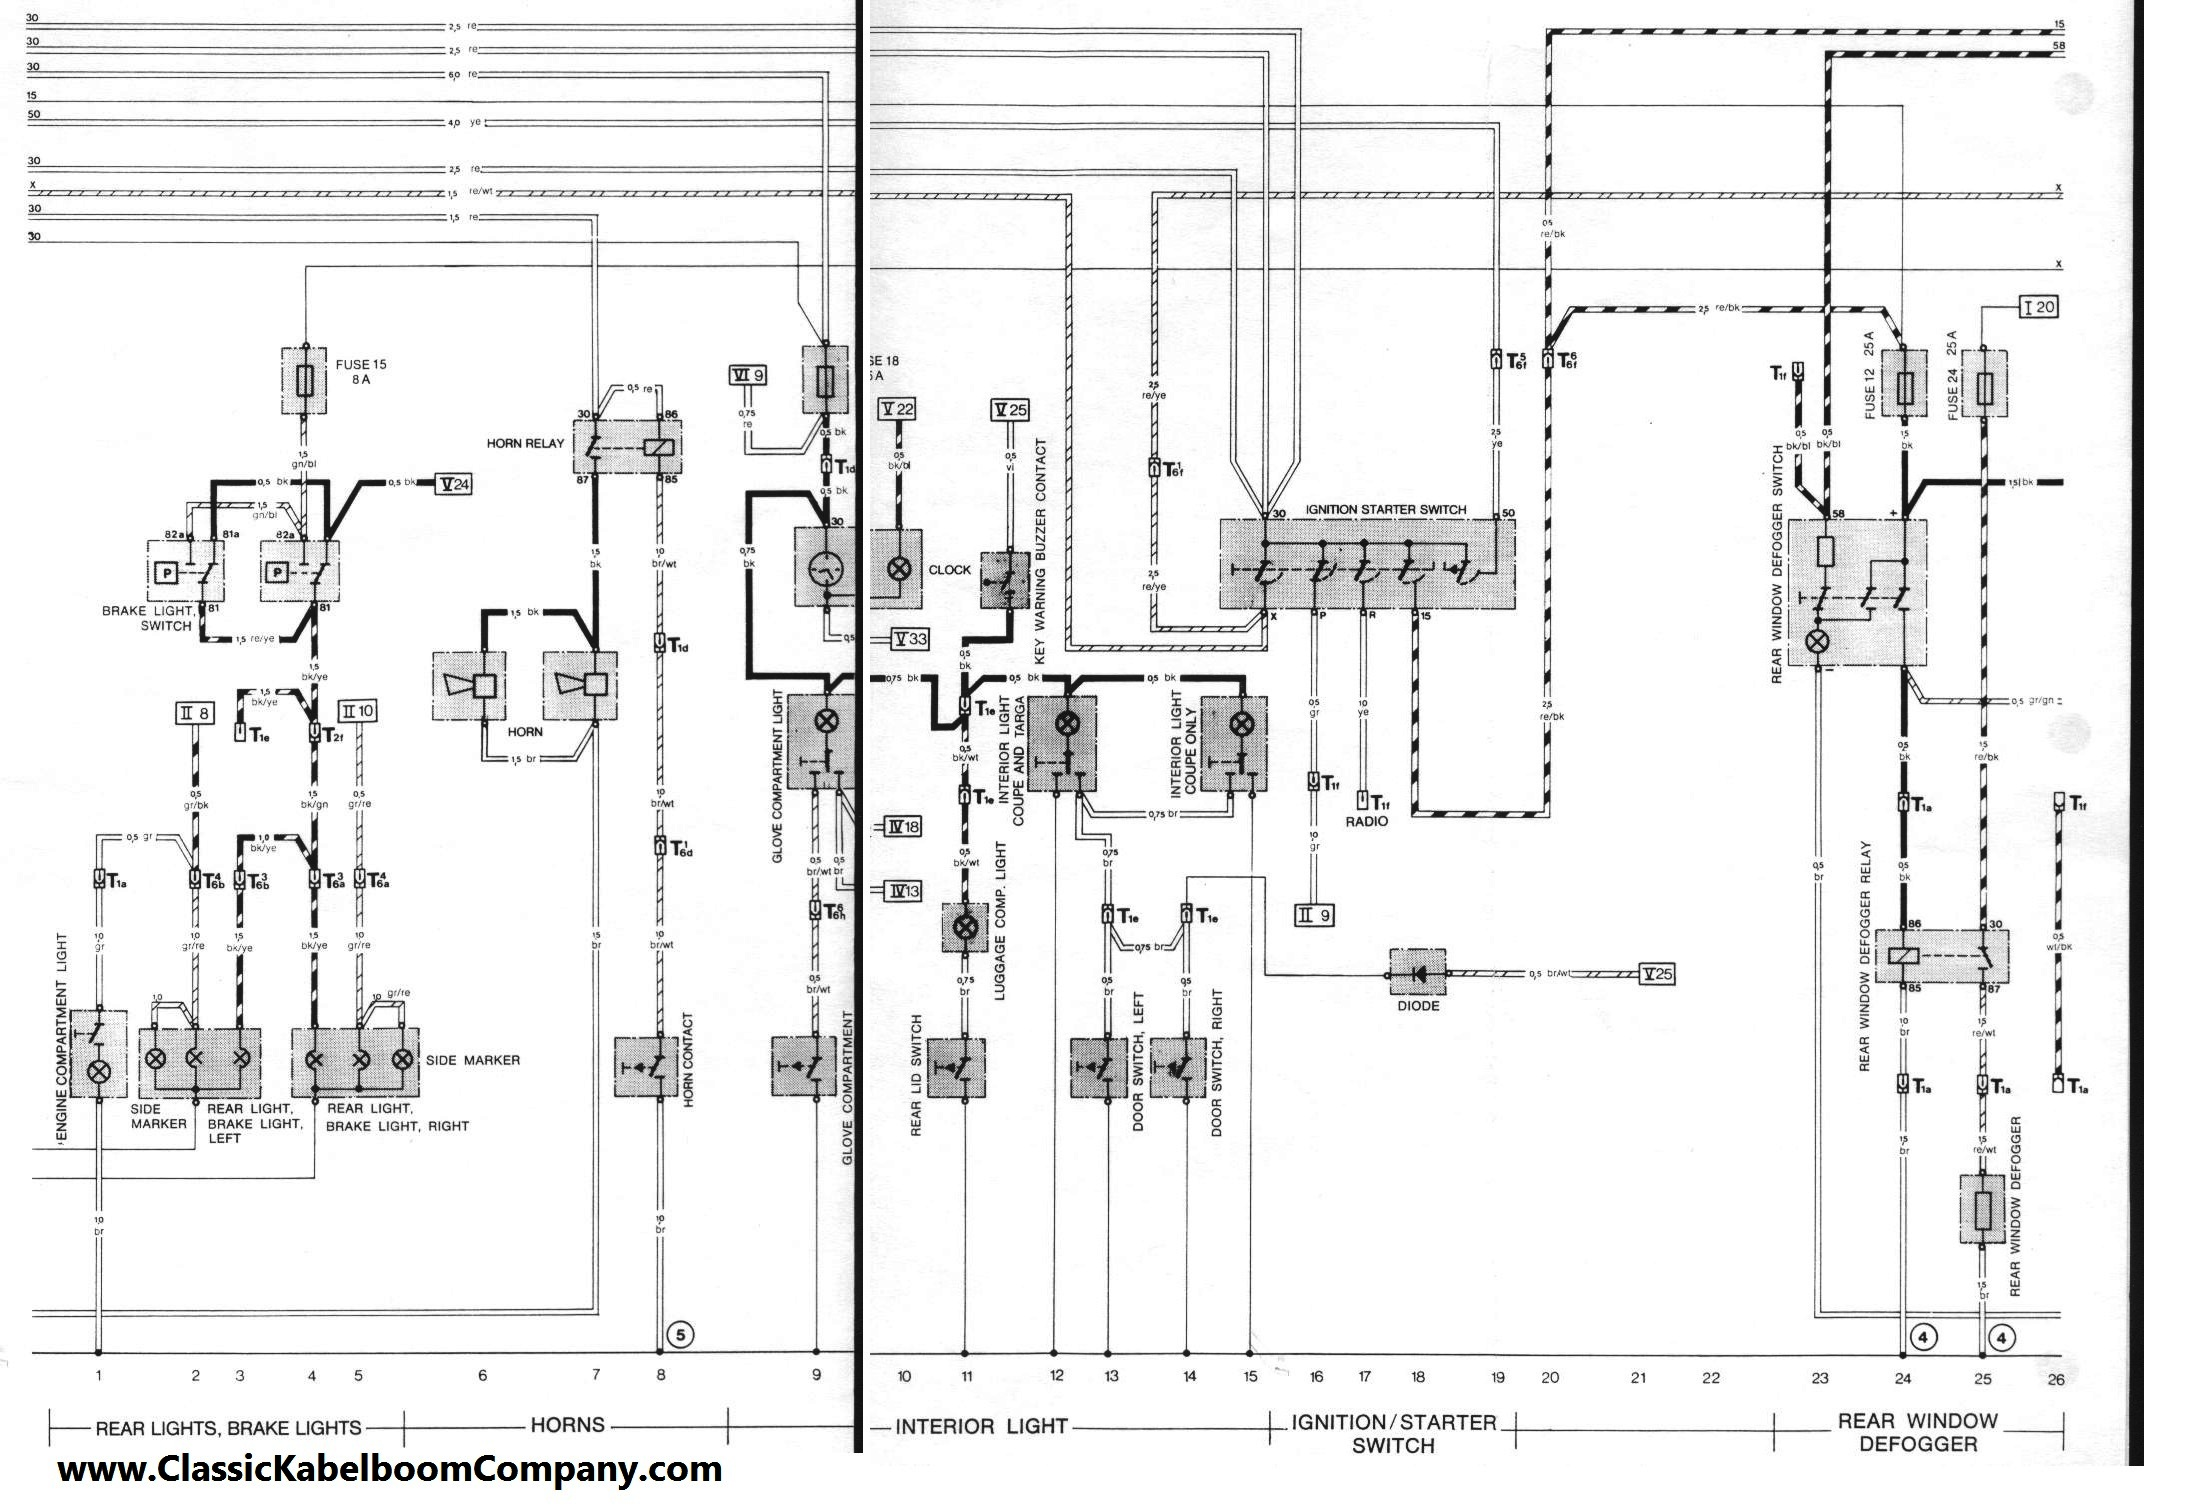 Fascinating Porsche 356a Wiring Diagram Photos - Best Image Wire | 458